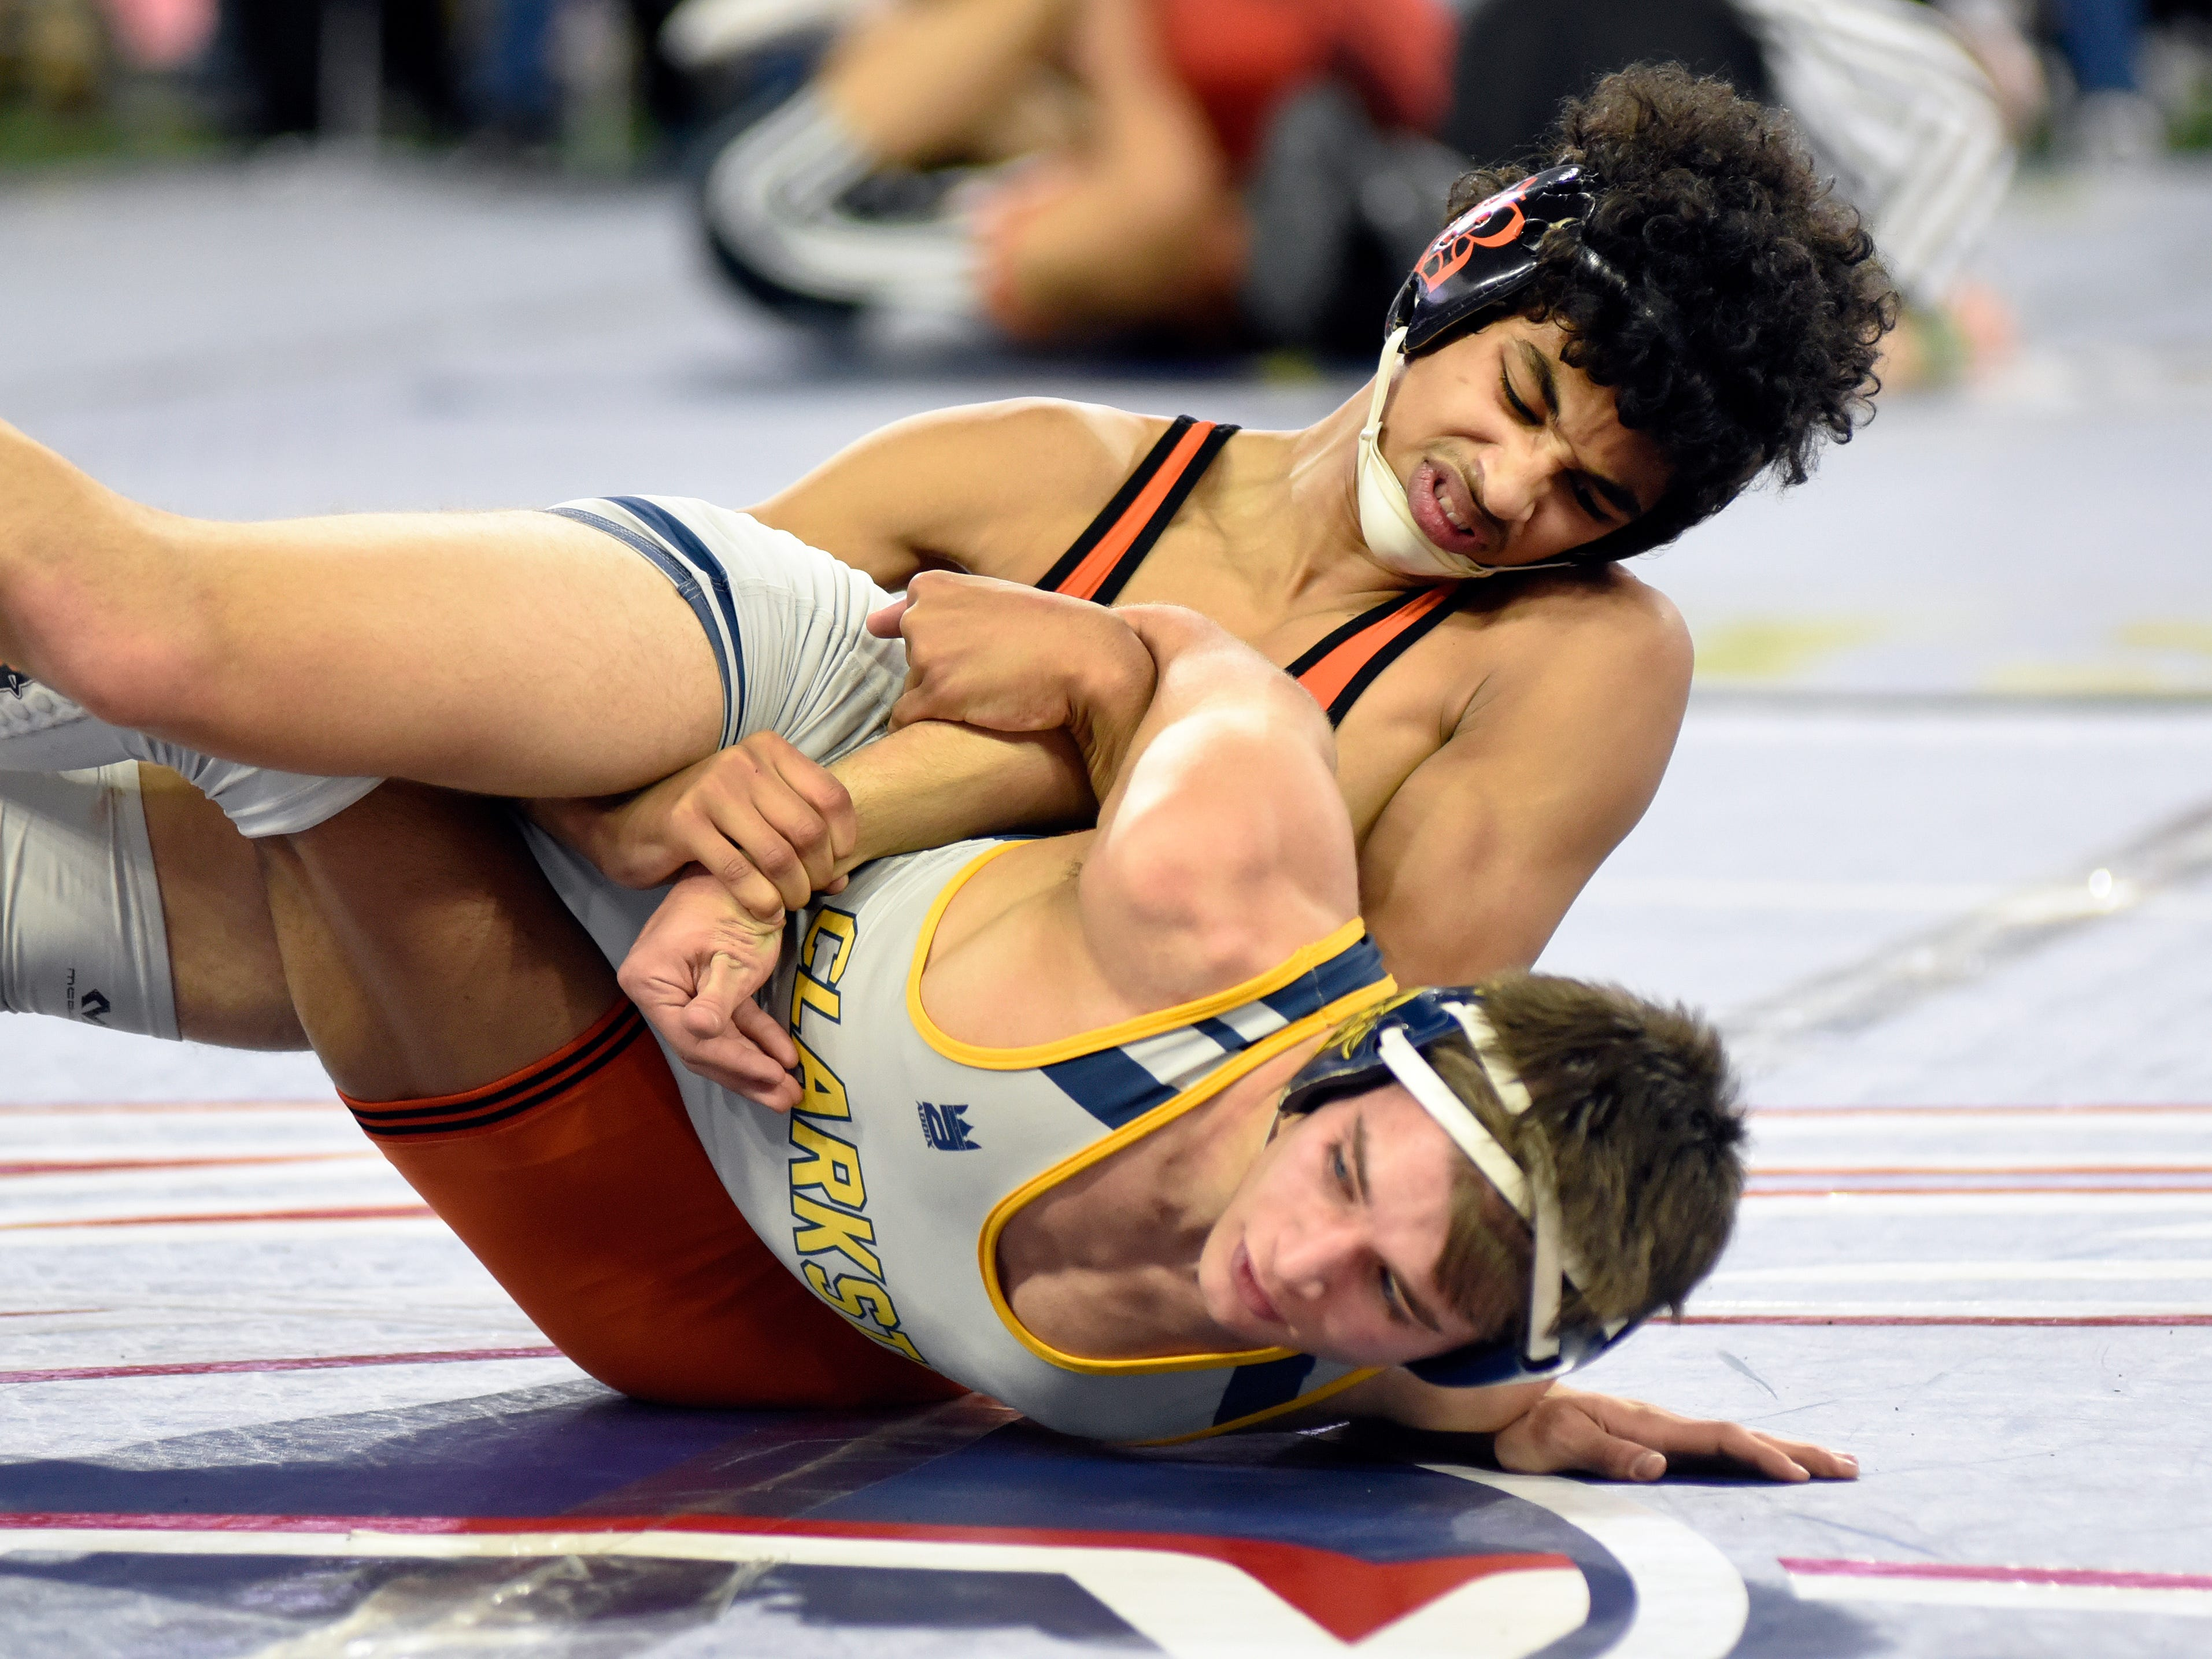 Rhett Newton of Brighton, top, wrestles Ethan Polick of Clarkston in a 140-pound quarterfinal match Friday. Newton won by major decision over Polick.